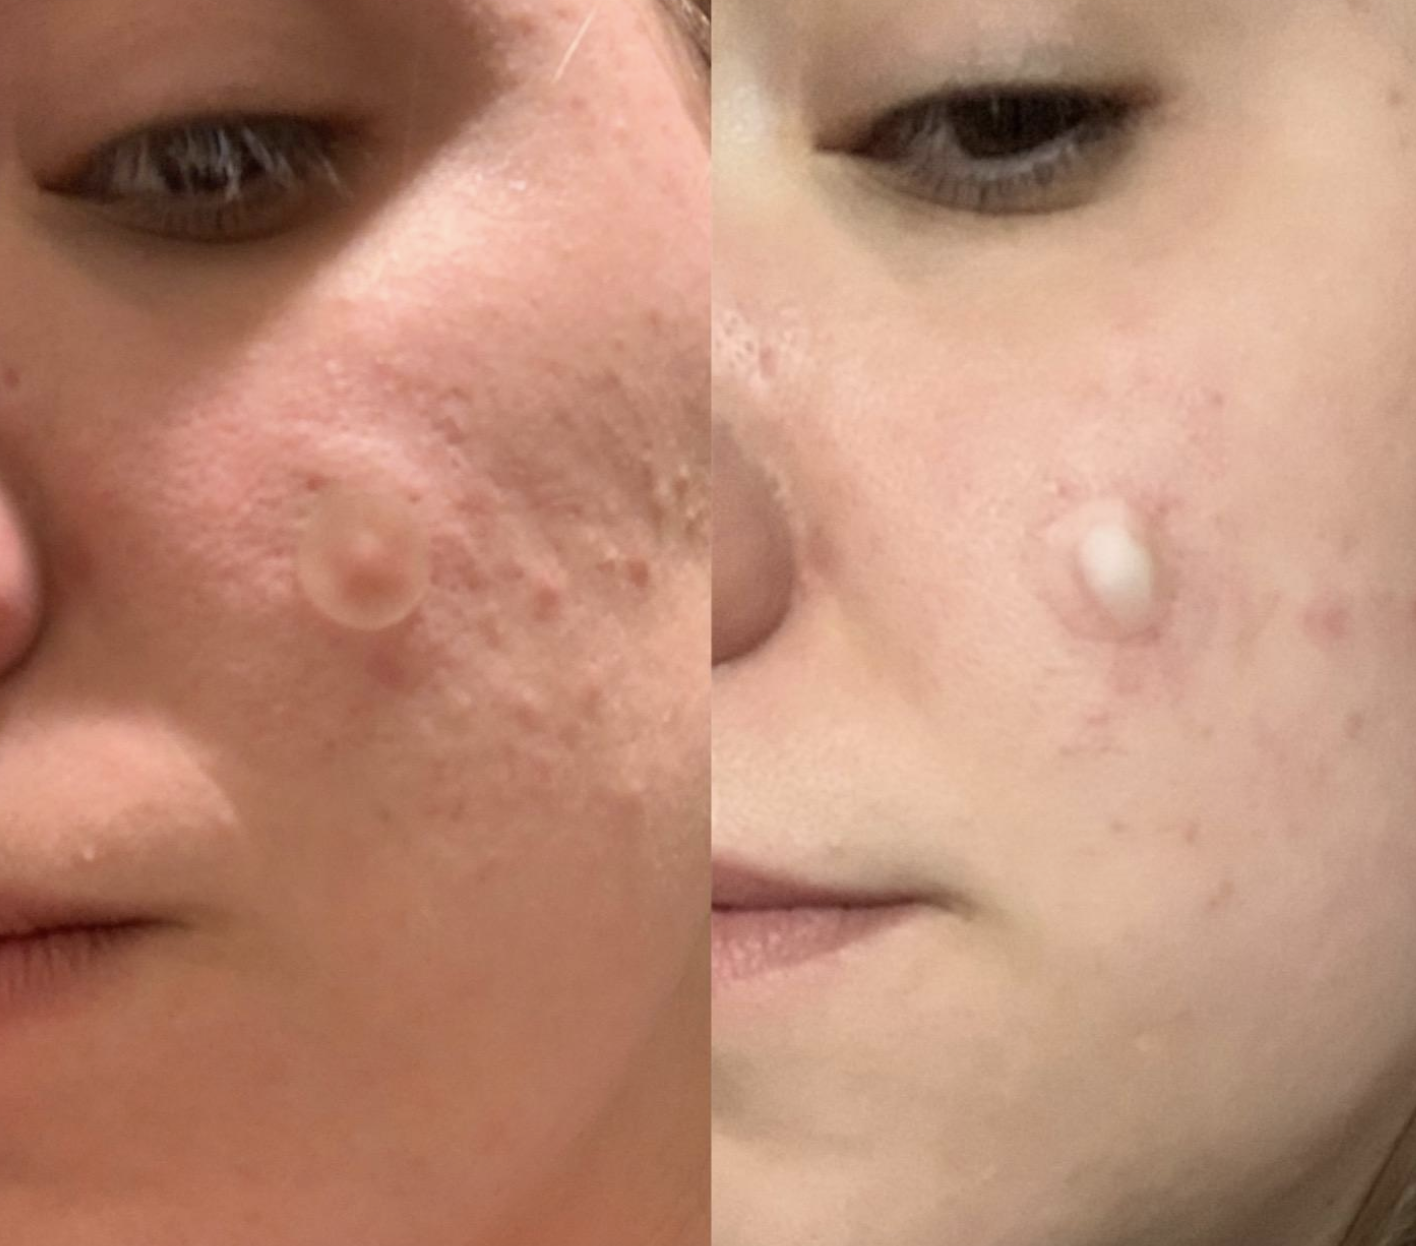 on the left a person with a transparent sticker placed on top of a pimple and on the right the same person with with the same transparent sticker filled with white pus